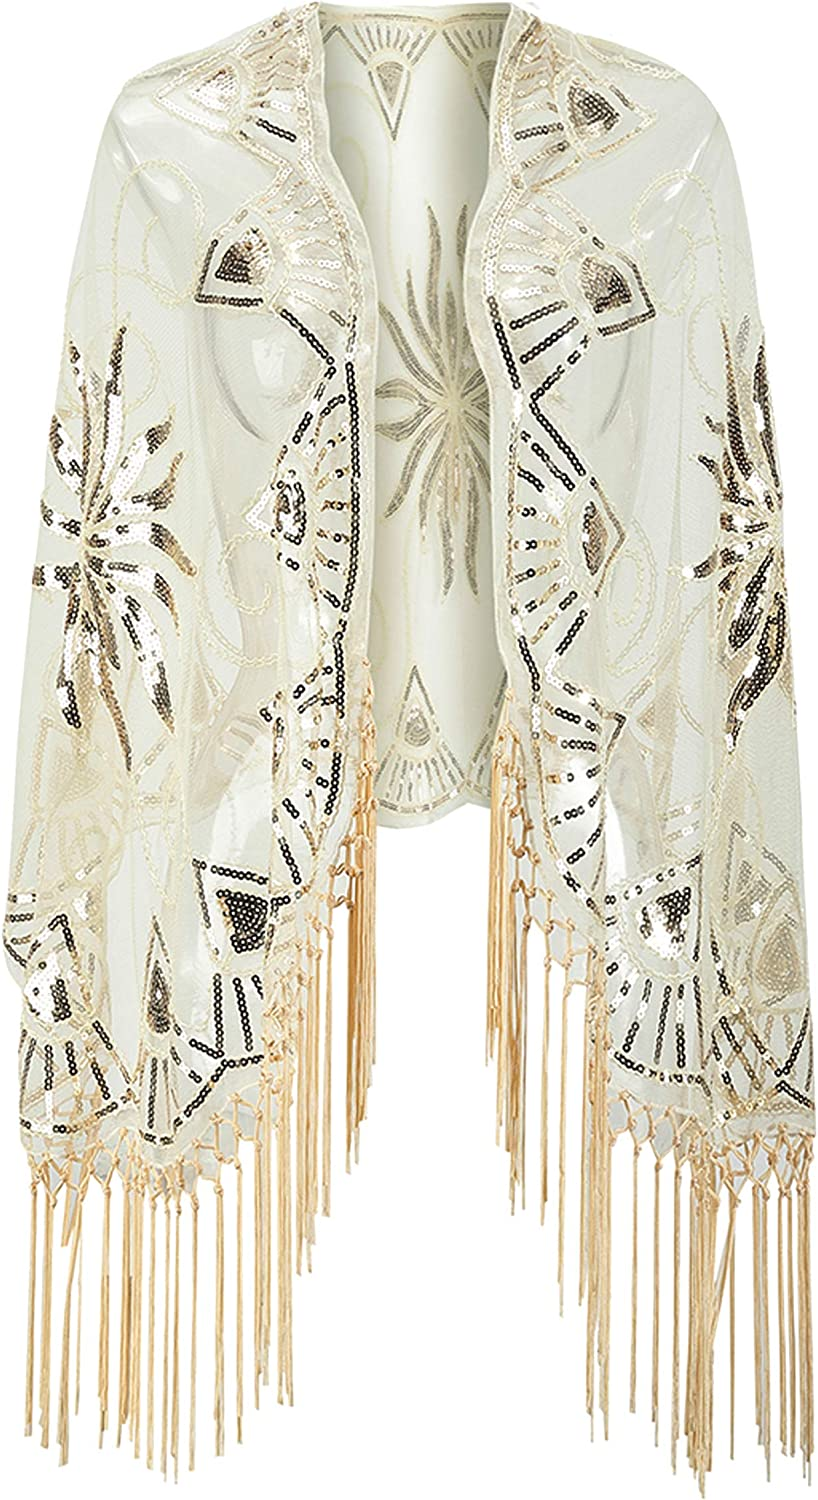 MORFORU Women's 1920s Sheer...